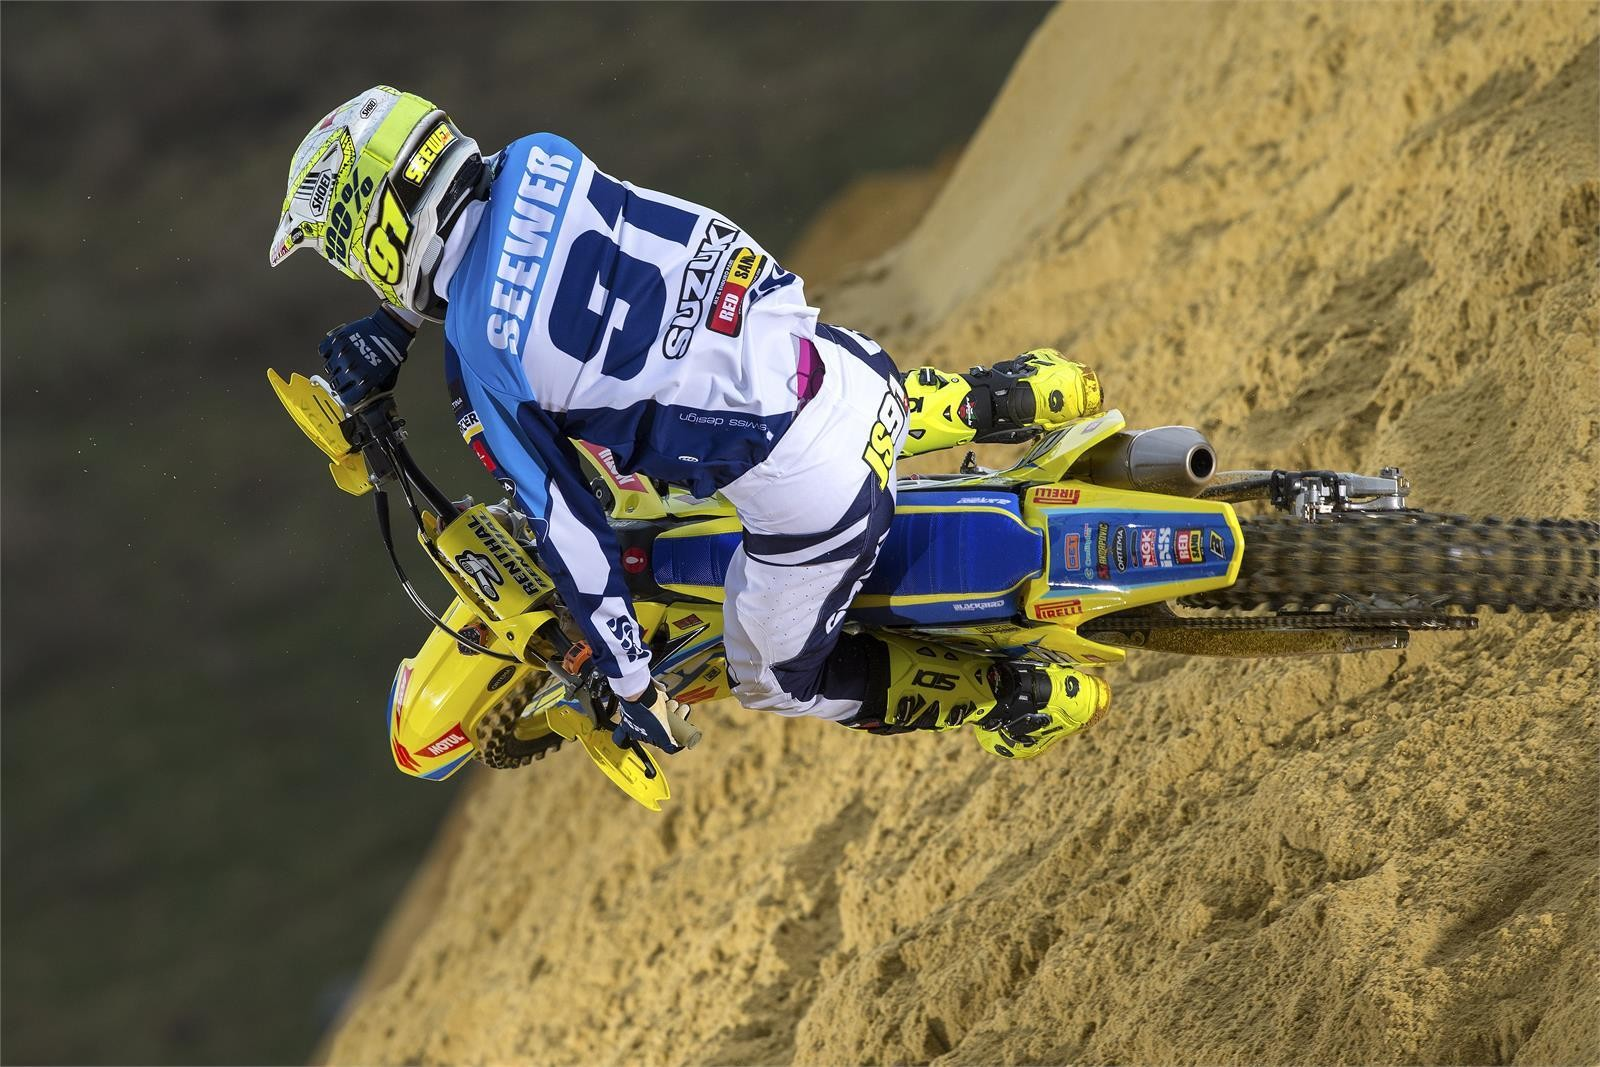 Jeremy Seewer - First Look: 2017 Suzuki World MX2 Team - Motocross Pictures - Vital MX